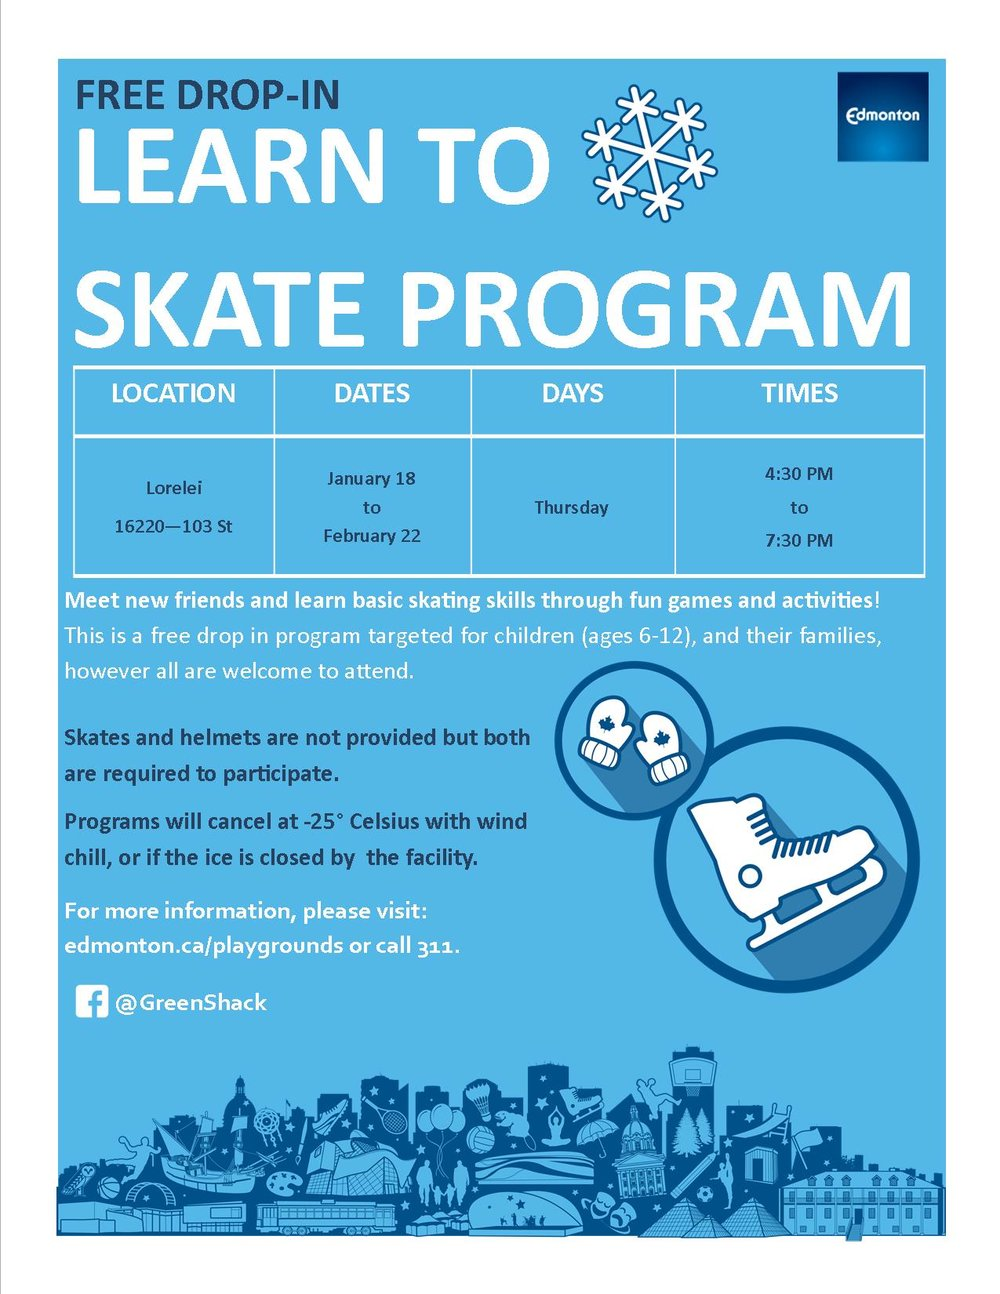 LBCL_LearnToSkate_Feb2018.jpg